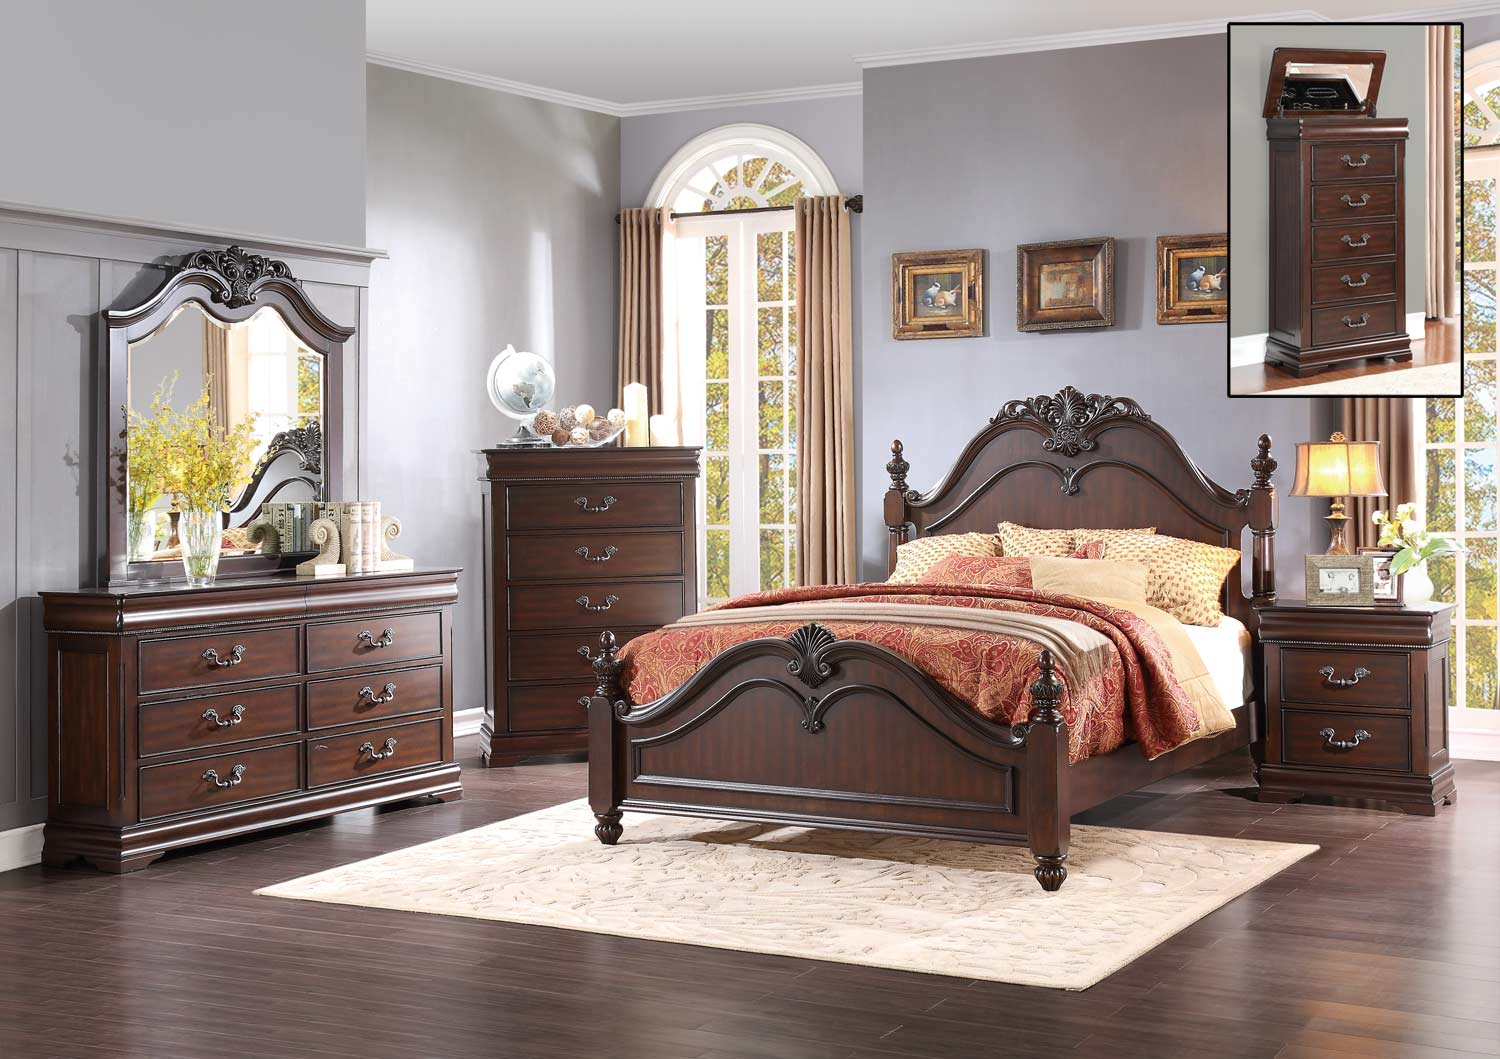 Homelegance Mont Belvieu Bedroom Set - Cherry